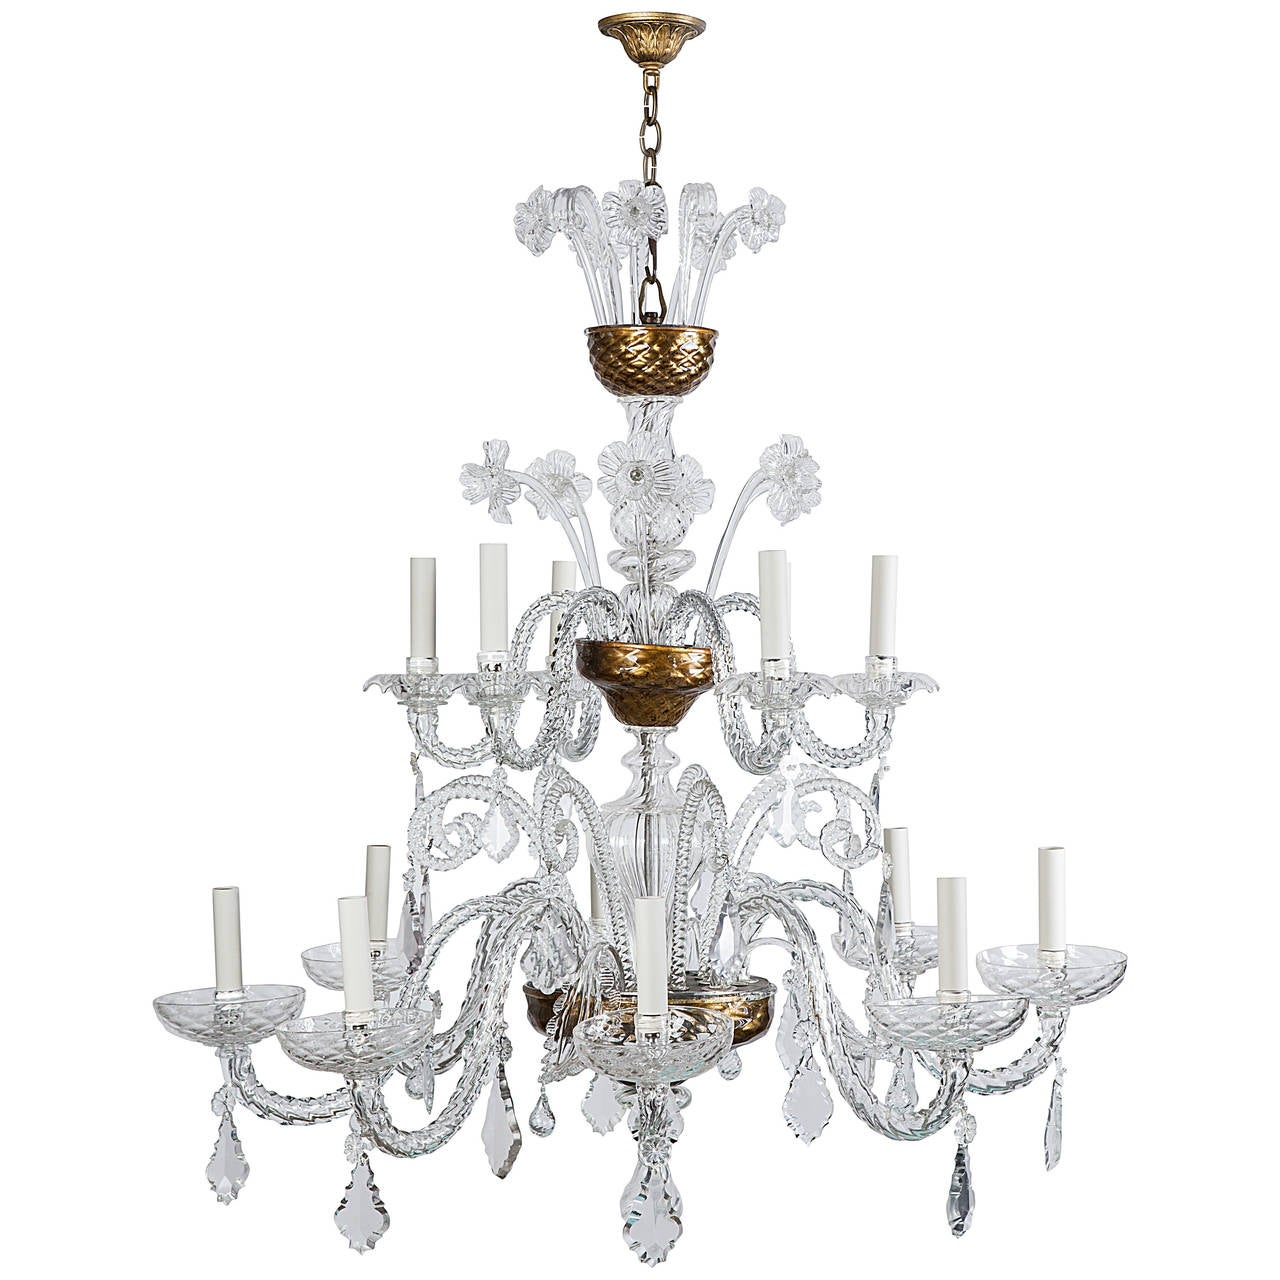 Murano Blown Glass Chandelier With Crystal Prisms At 1stdibs